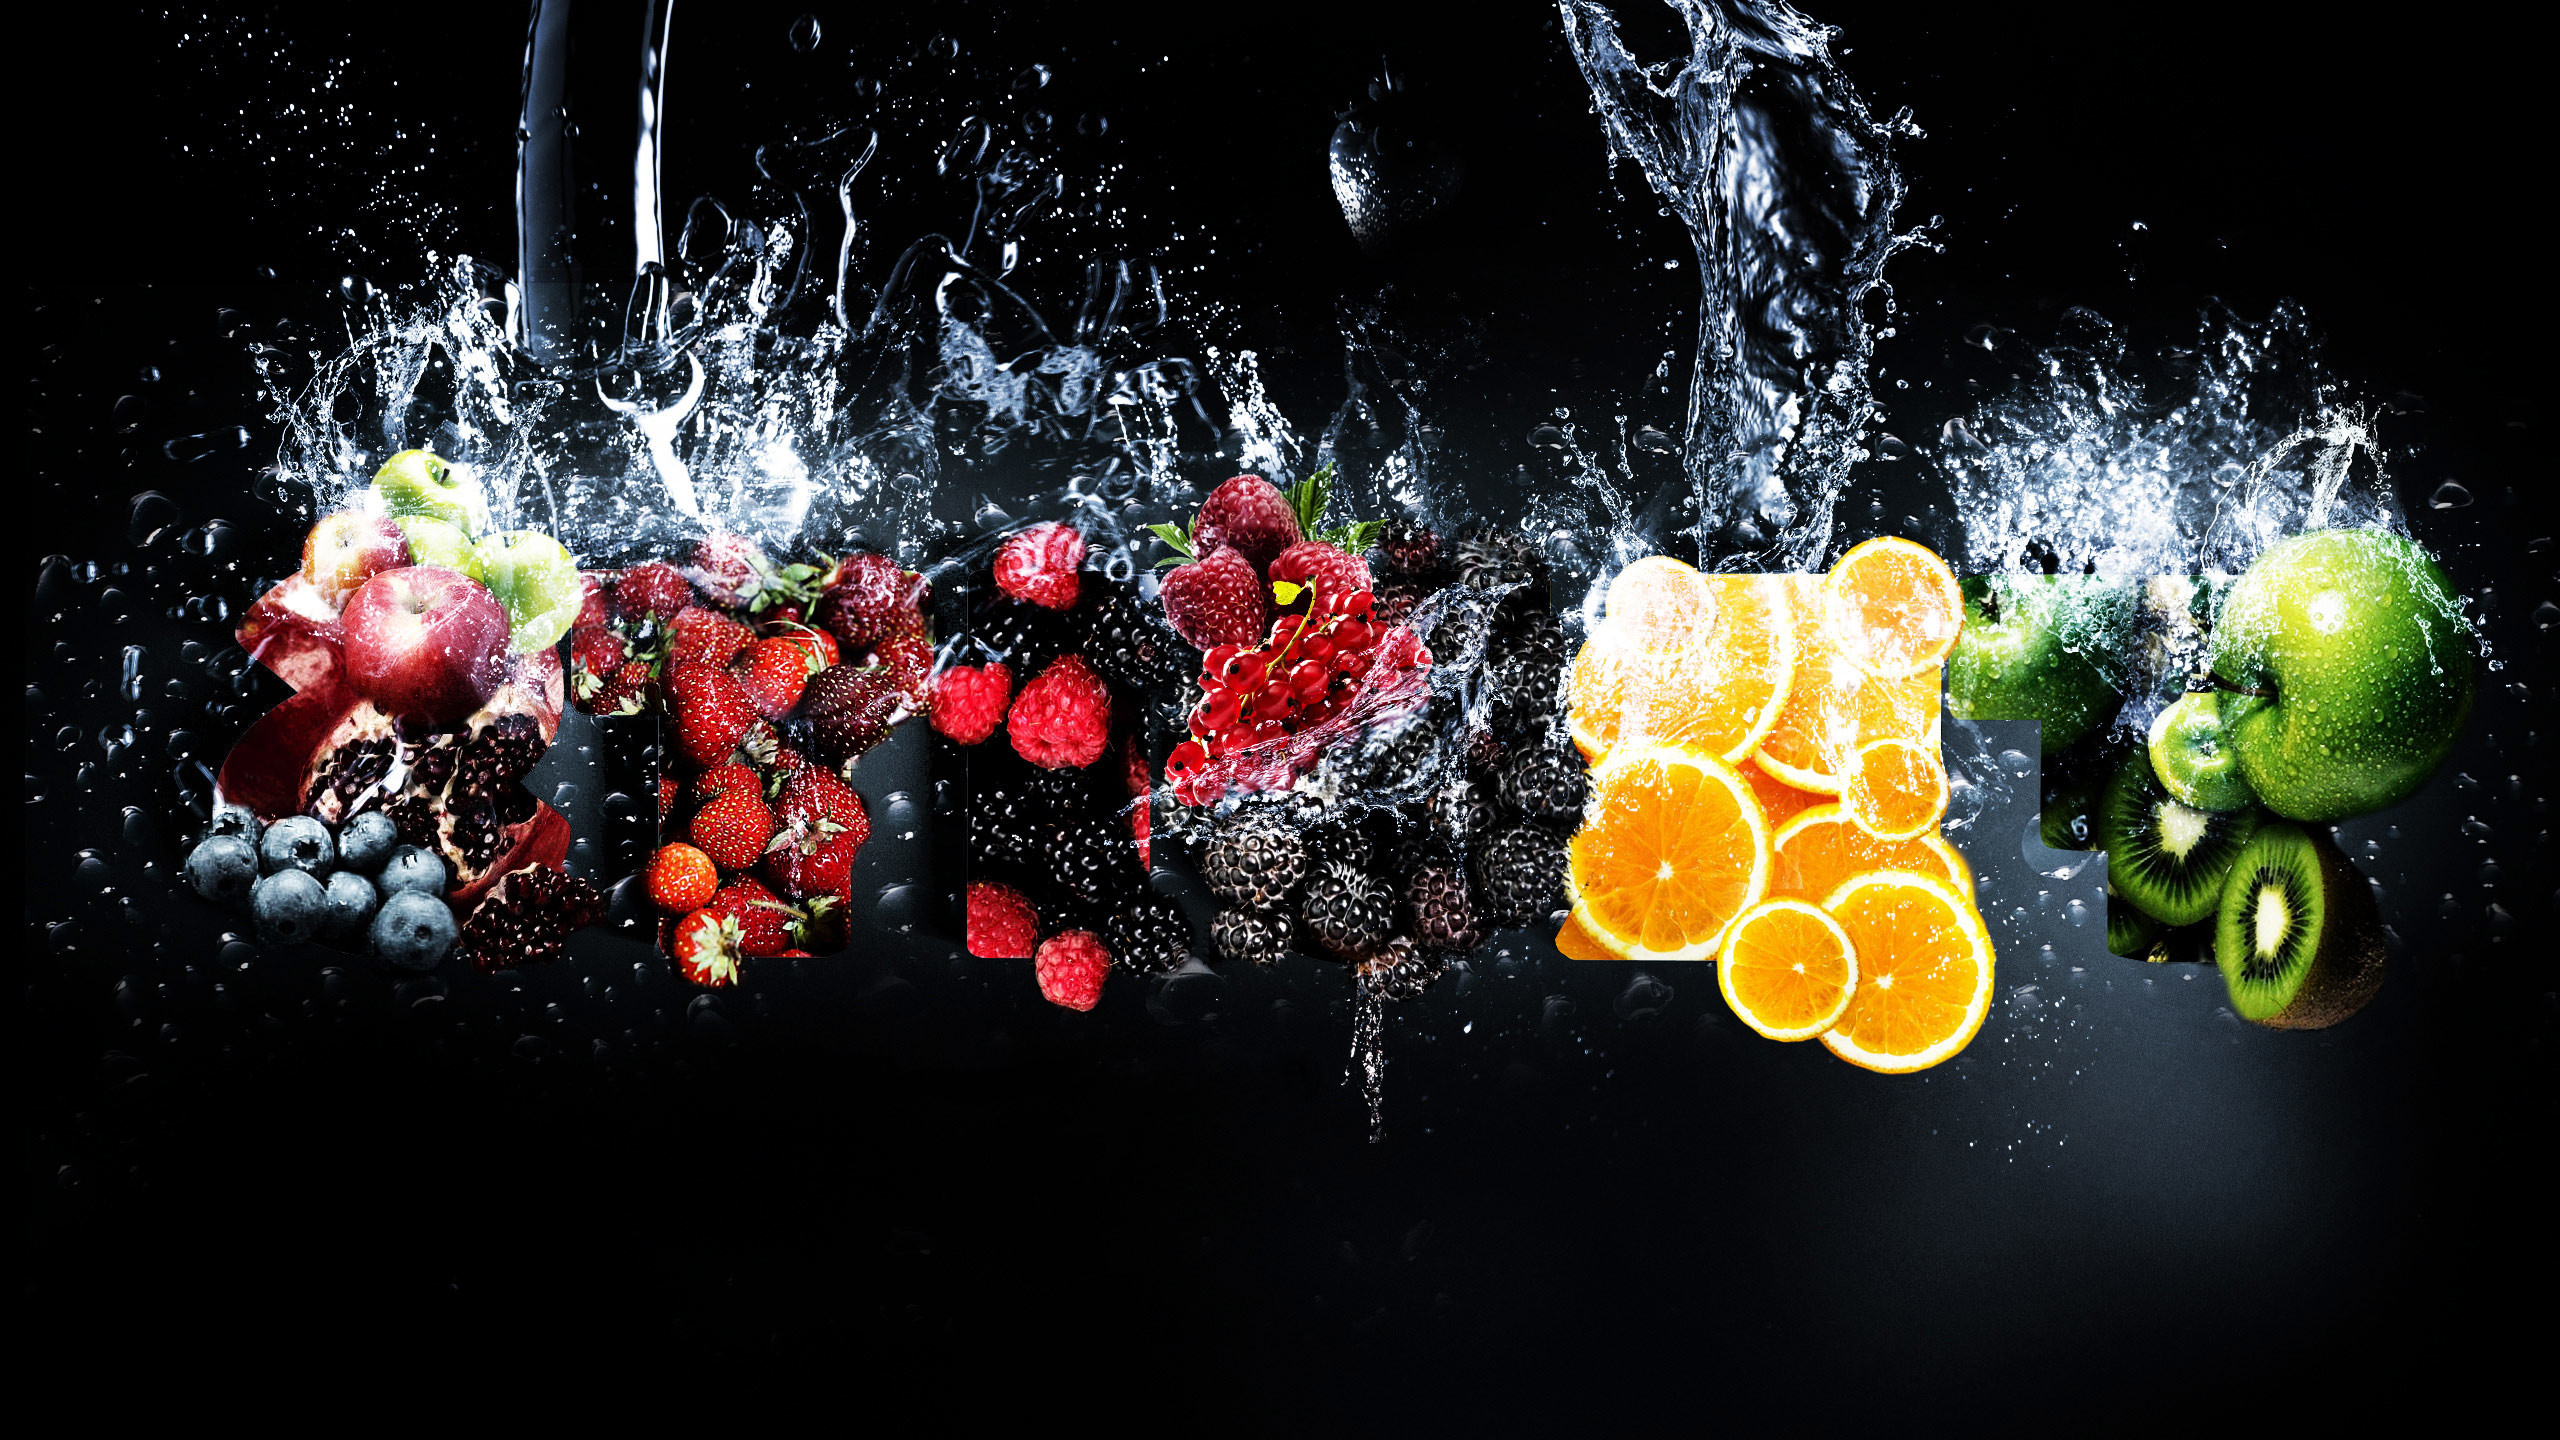 Res: 2560x1440, Awesome Fresh Fruits All Wallpaper Image Wallpaper